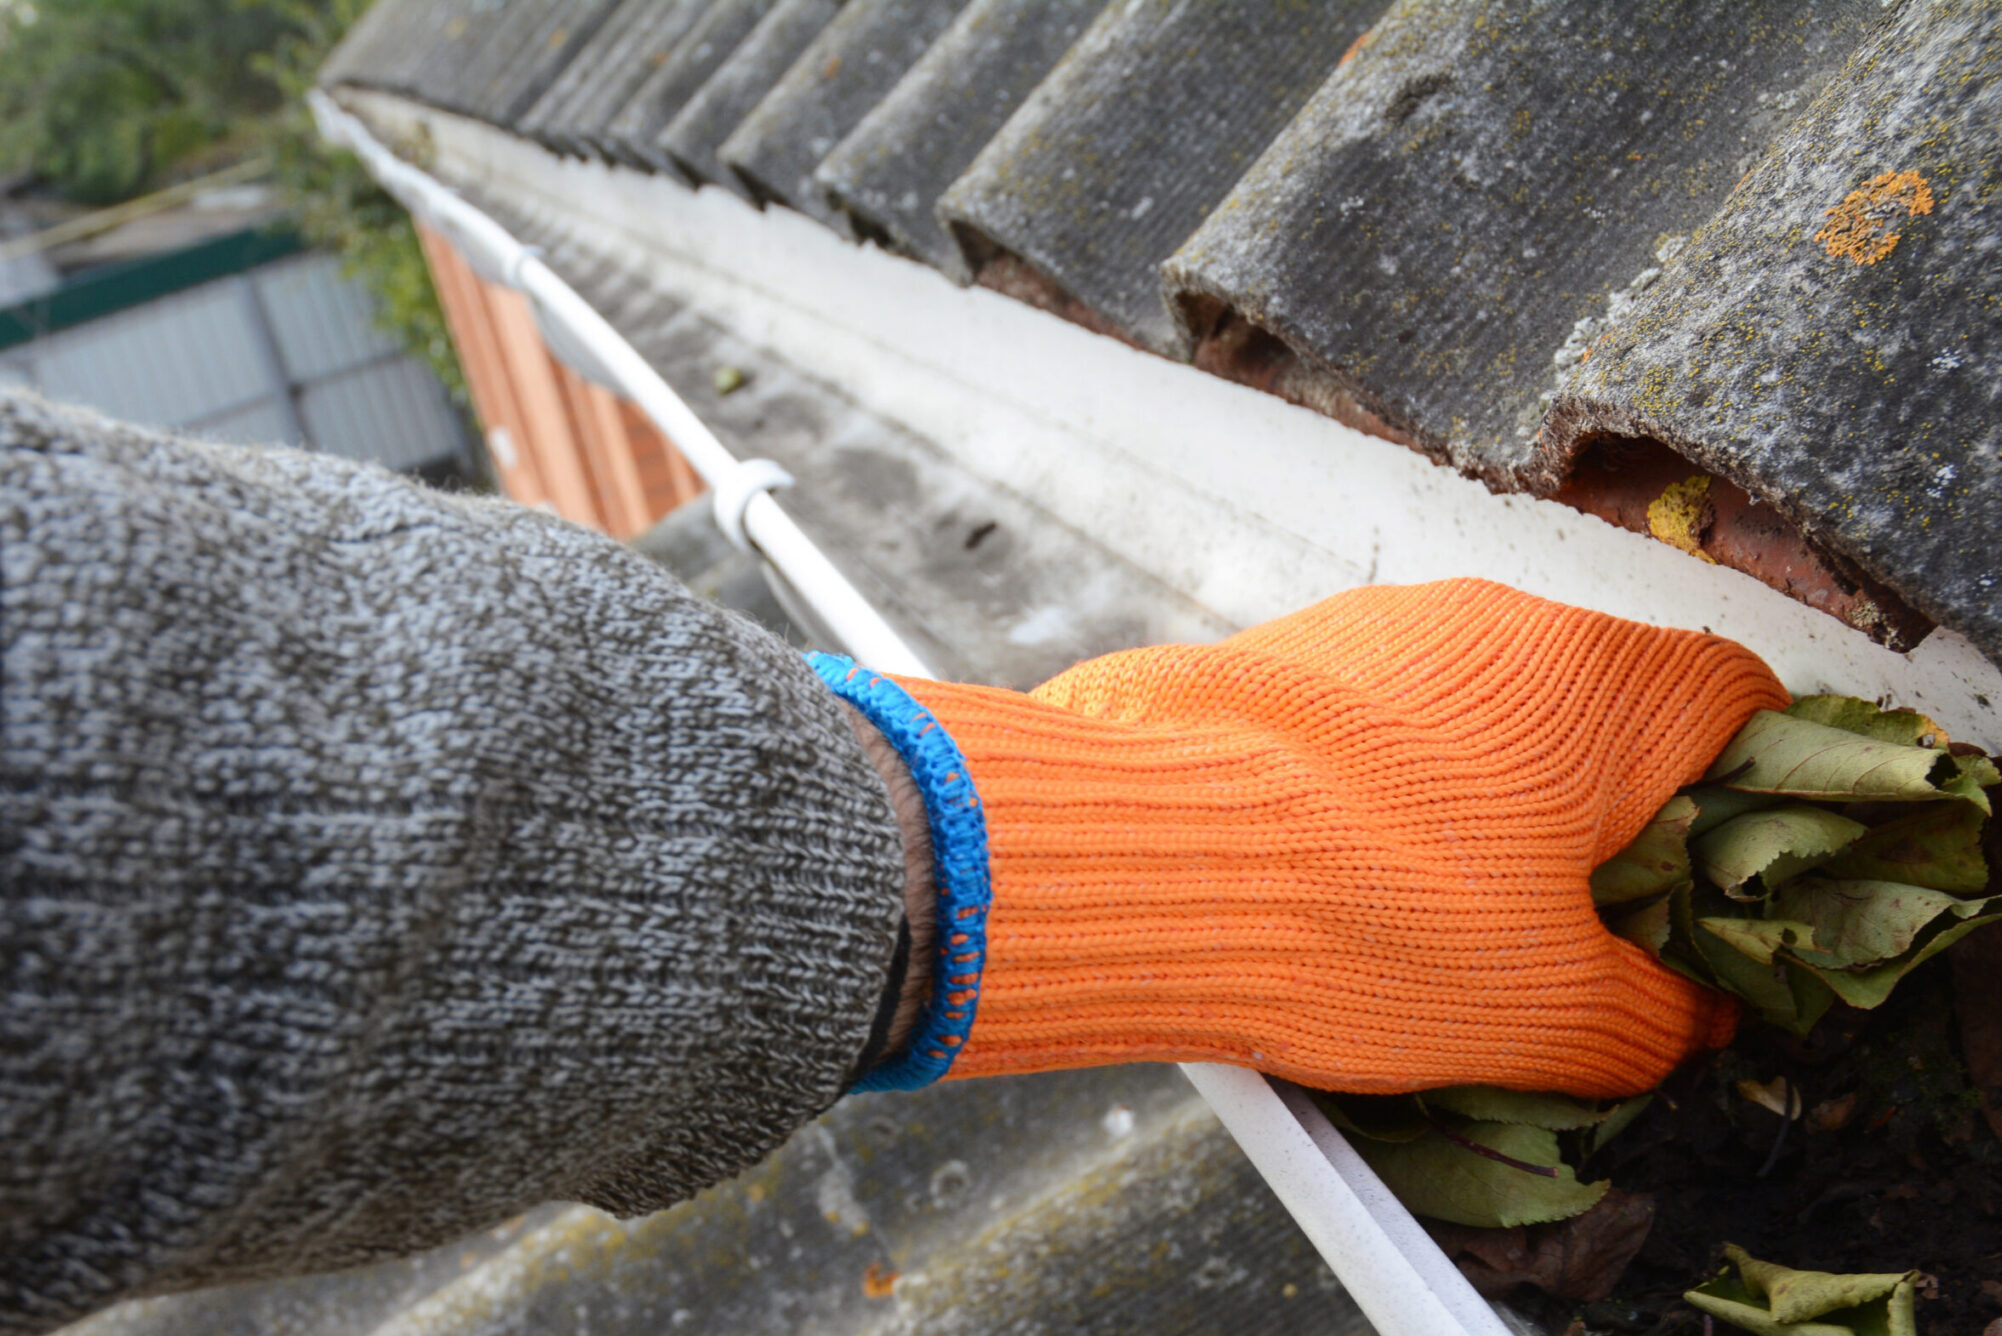 Cleaning the gutters of leaves